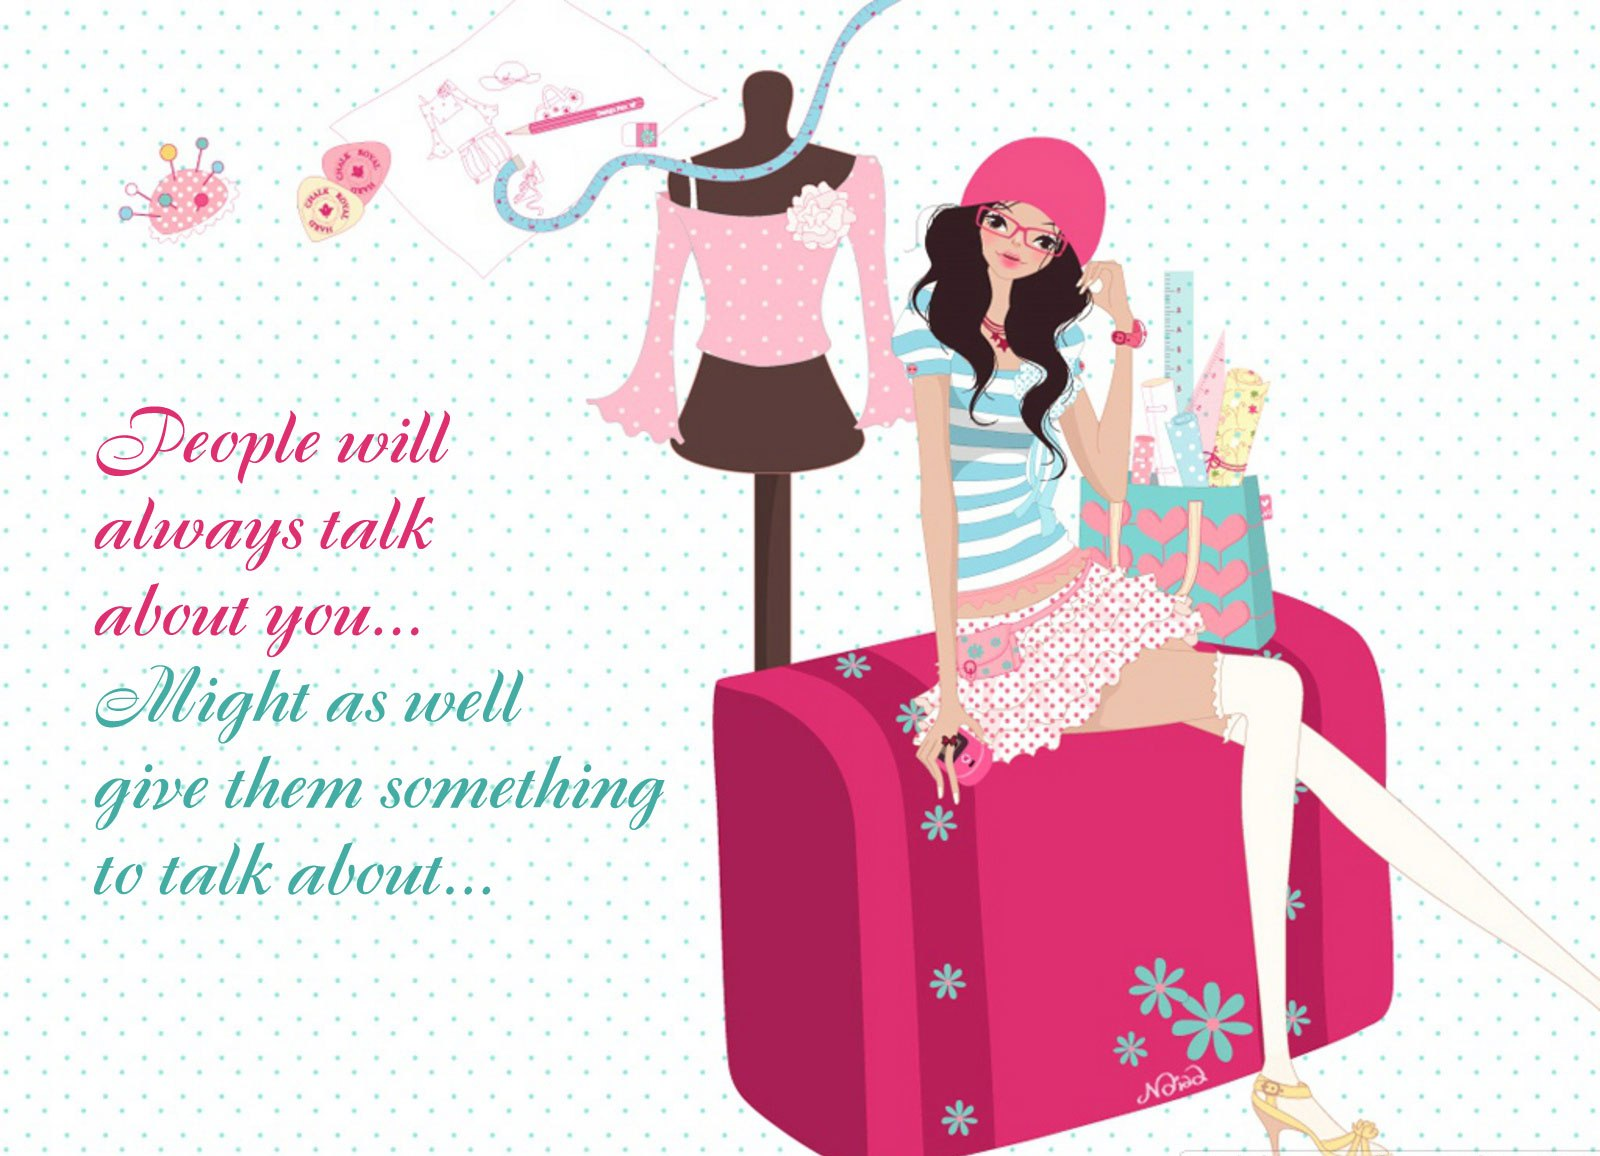 Cool Quotes And Sayings For Girls Quotesgram: Cool Quotes About Girls. QuotesGram